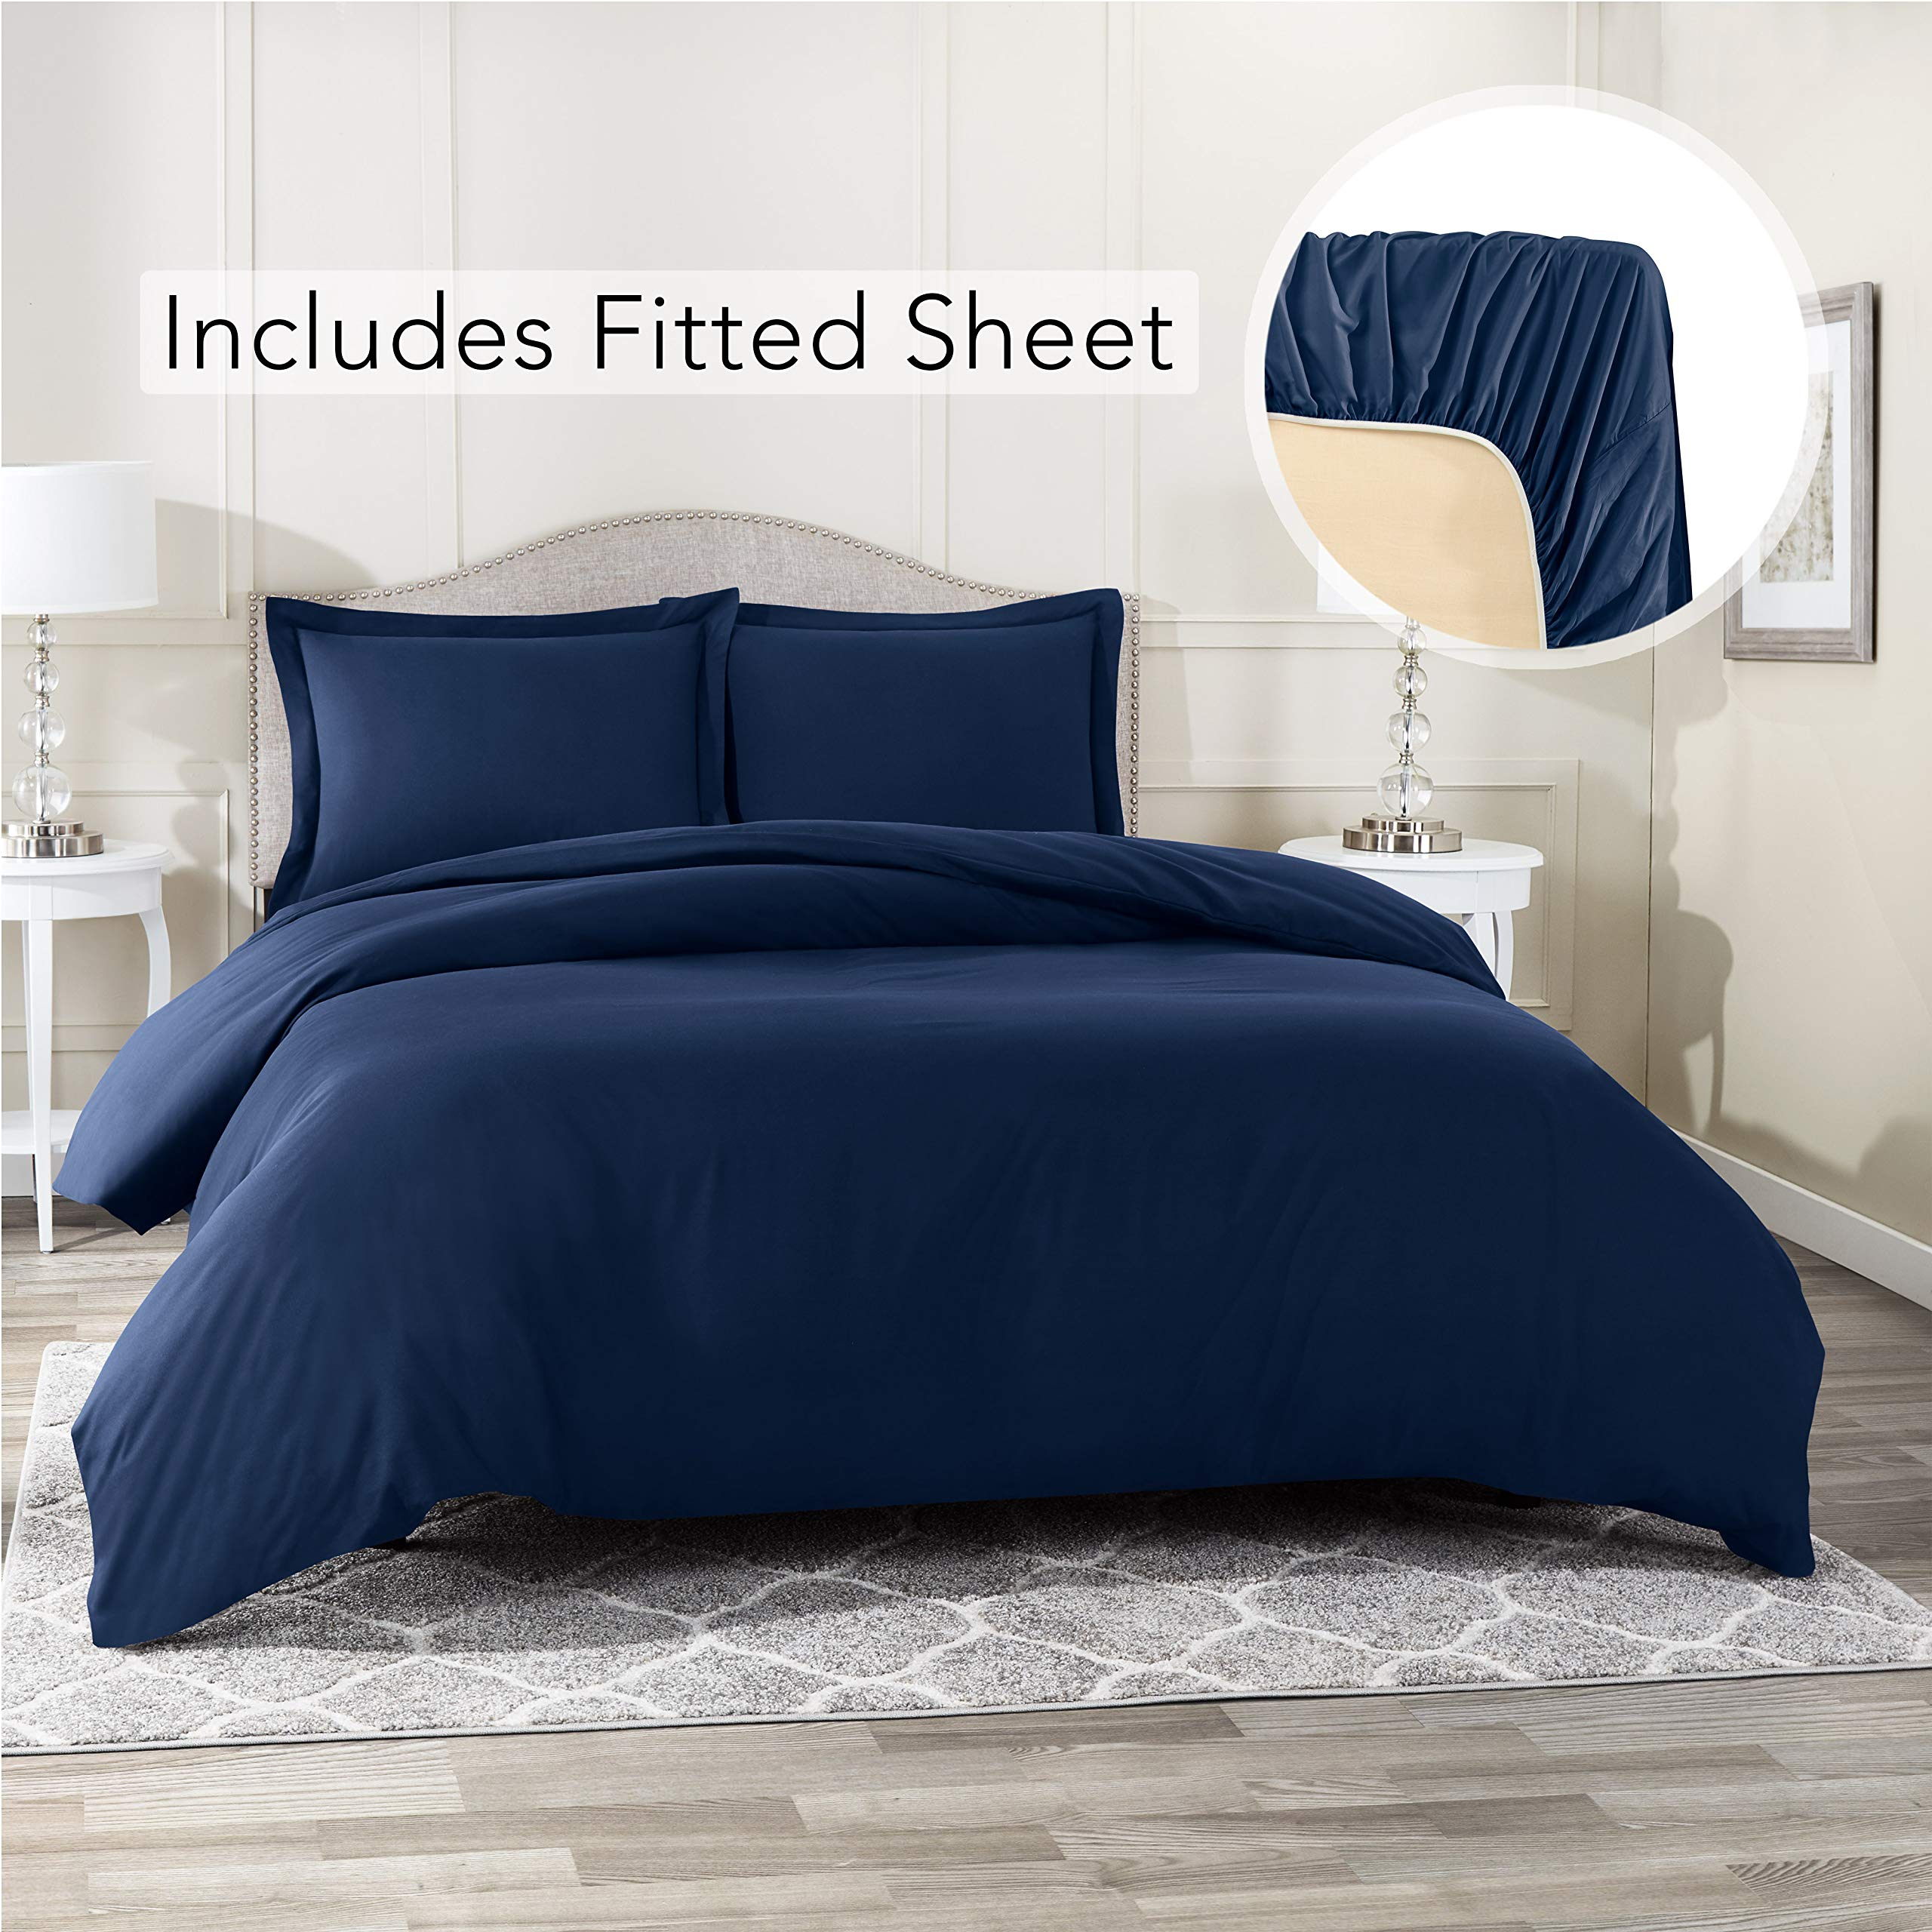 Nestl Bedding Duvet Cover with Fitted Sheet 4 Piece Set - Soft Double Brushed Microfiber Hotel Collection - Comforter Cover with Button Closure, Fitted Sheet, 2 Pillow Shams, Cal King - Navy